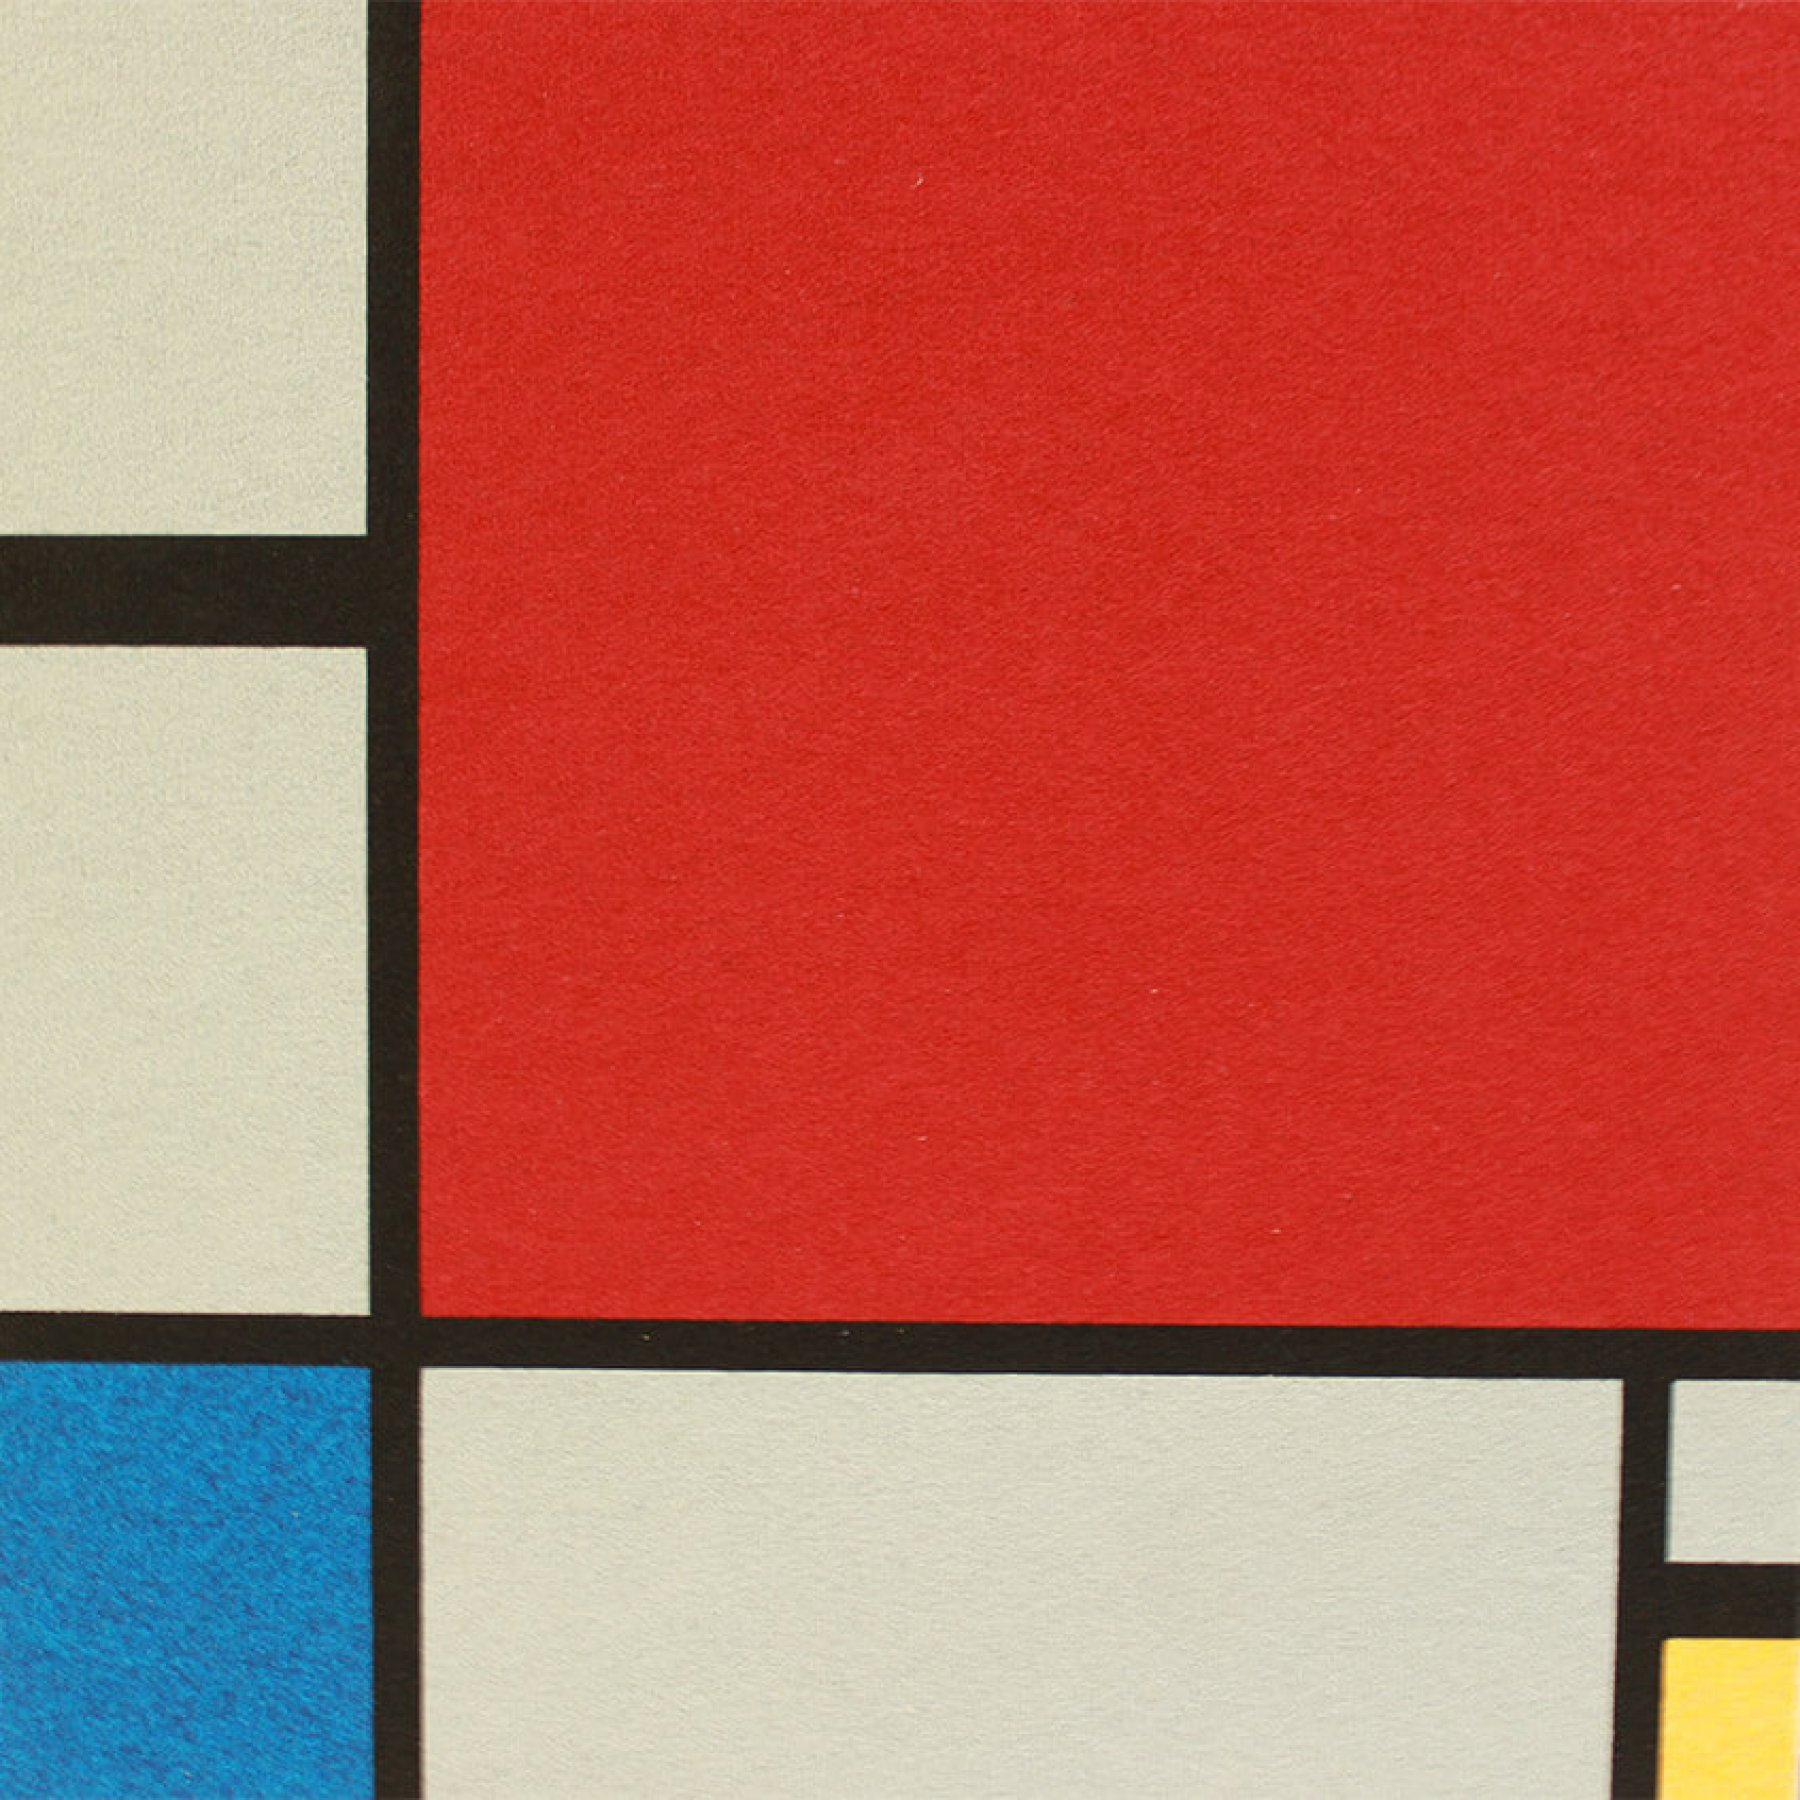 Komposition in Rot, Blau, Gelb | Piet Mondrian